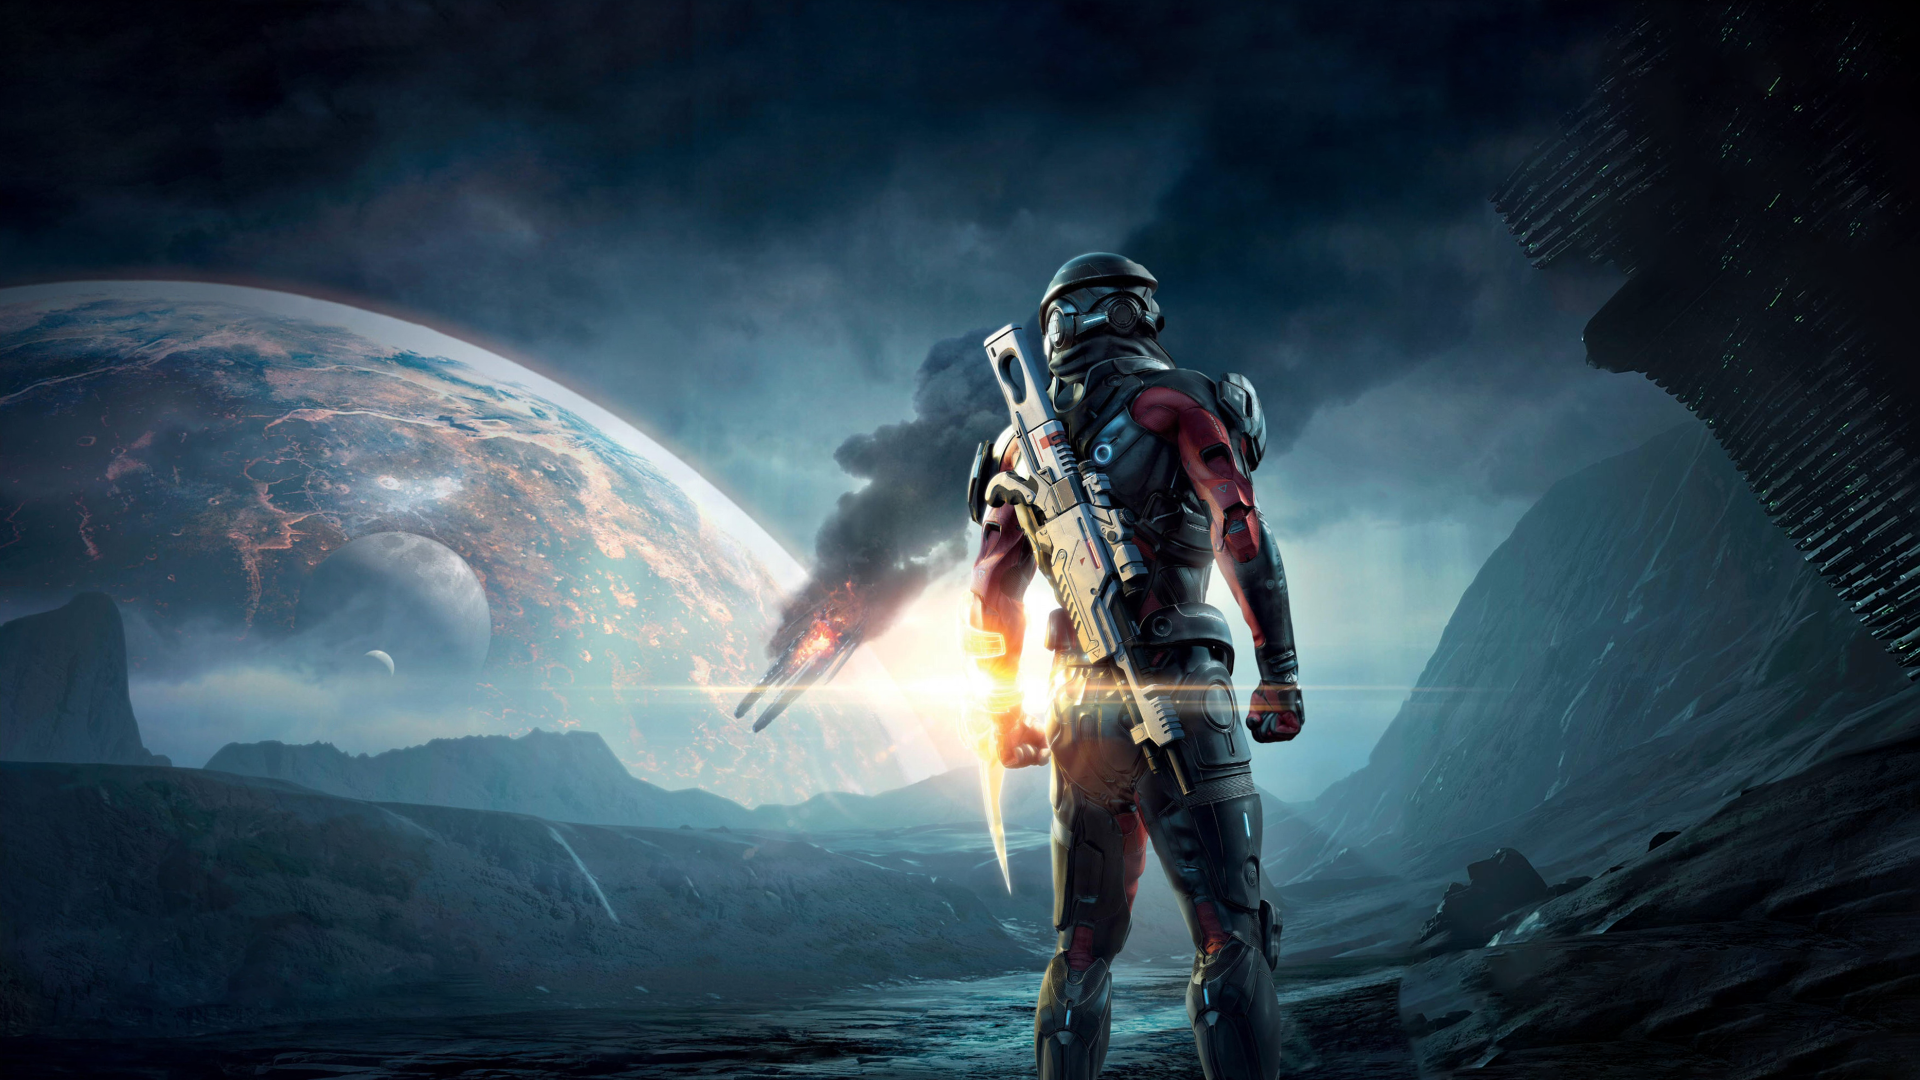 3840x2160 Ryder Wallpaper Background Image. View, download